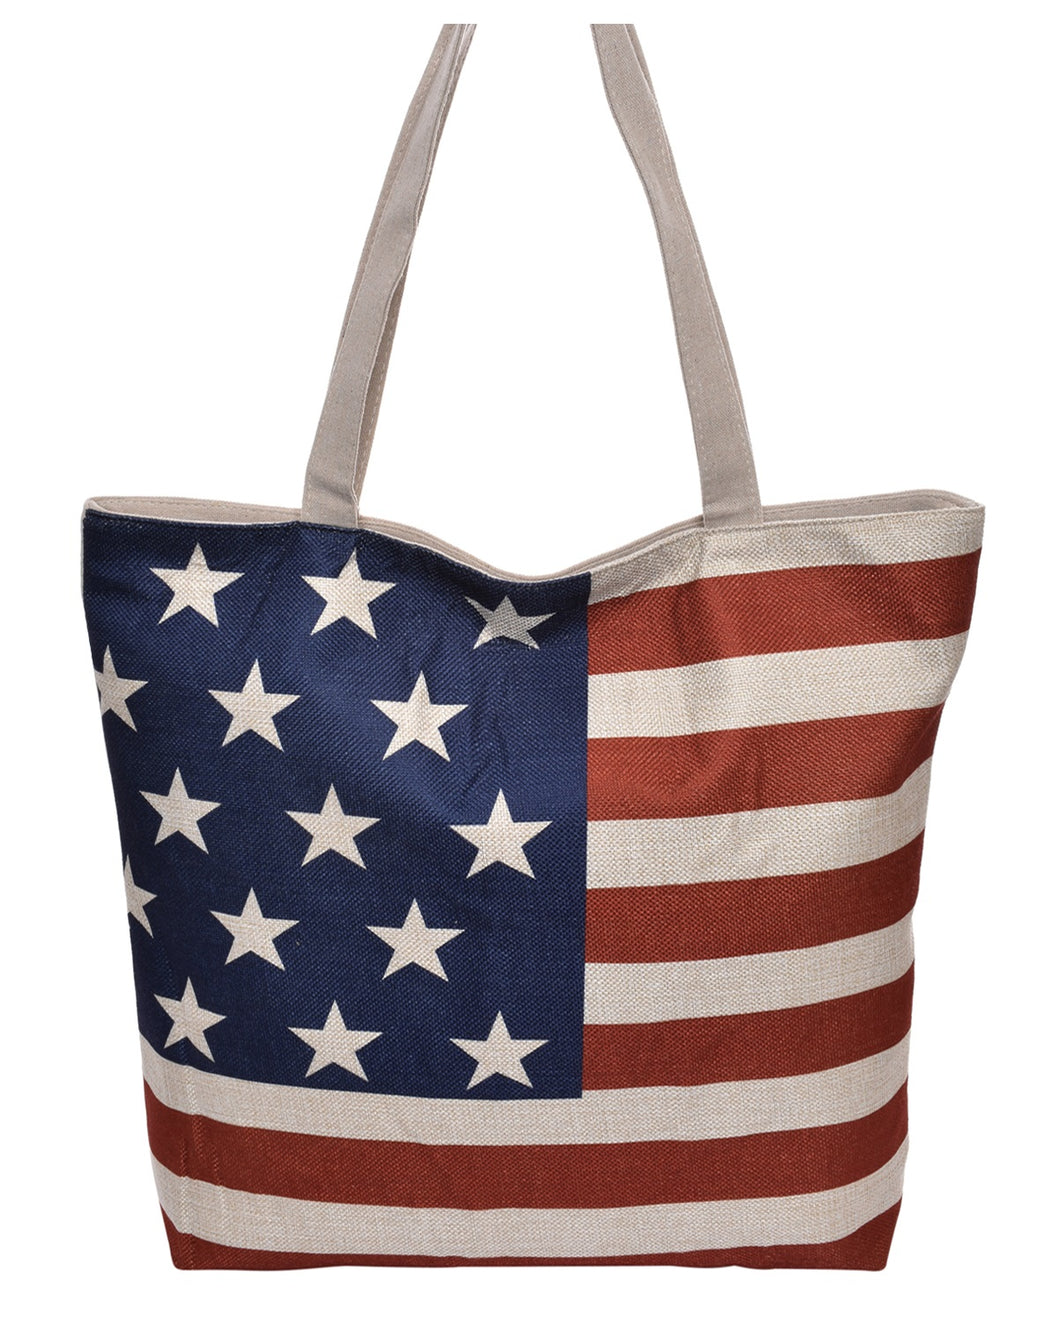 Beach Diaper Bag Shopping Purse Handbag Craft Travel Tote Feathers or USA Flag